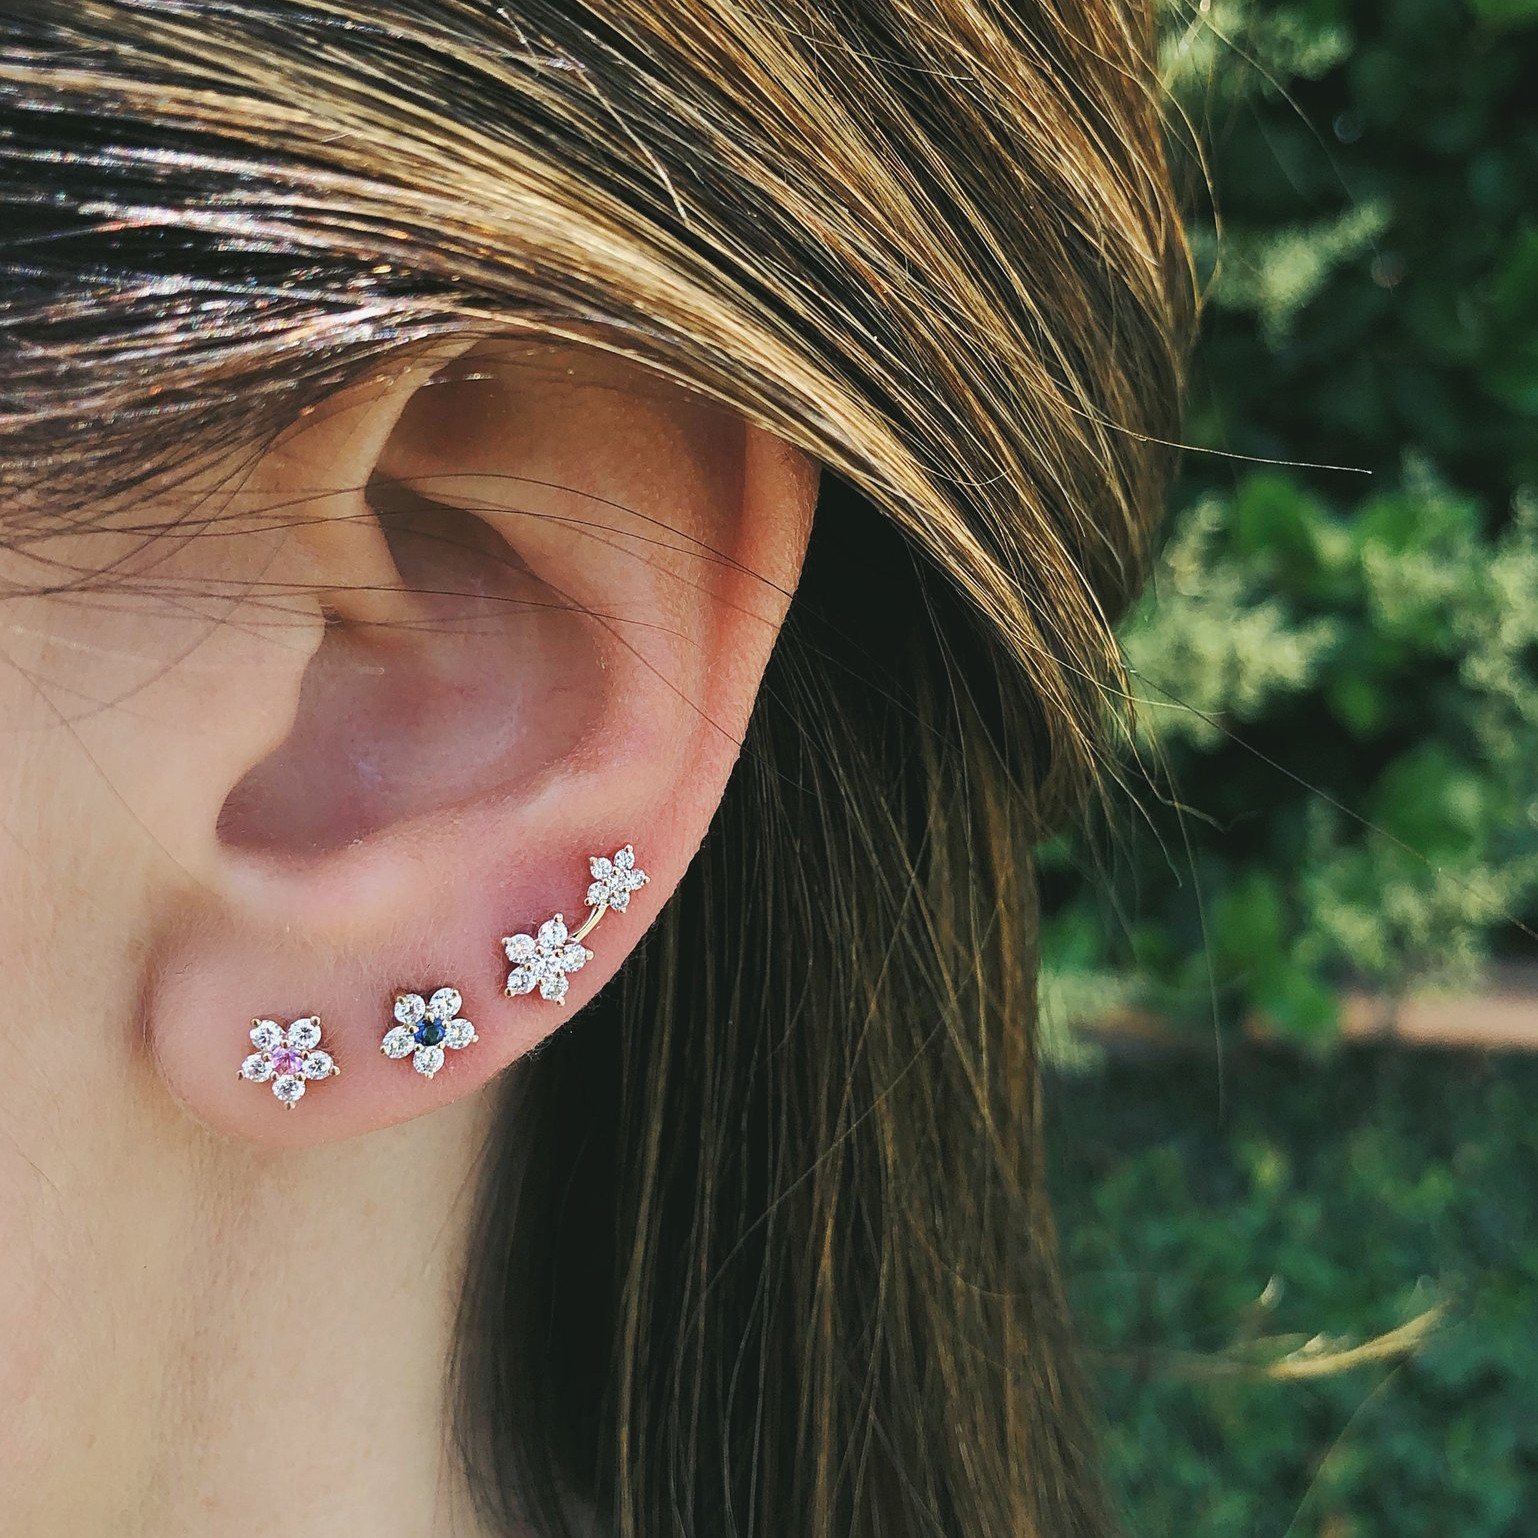 Right Diamond Double Flower Stud Earring by EF Collection on Model